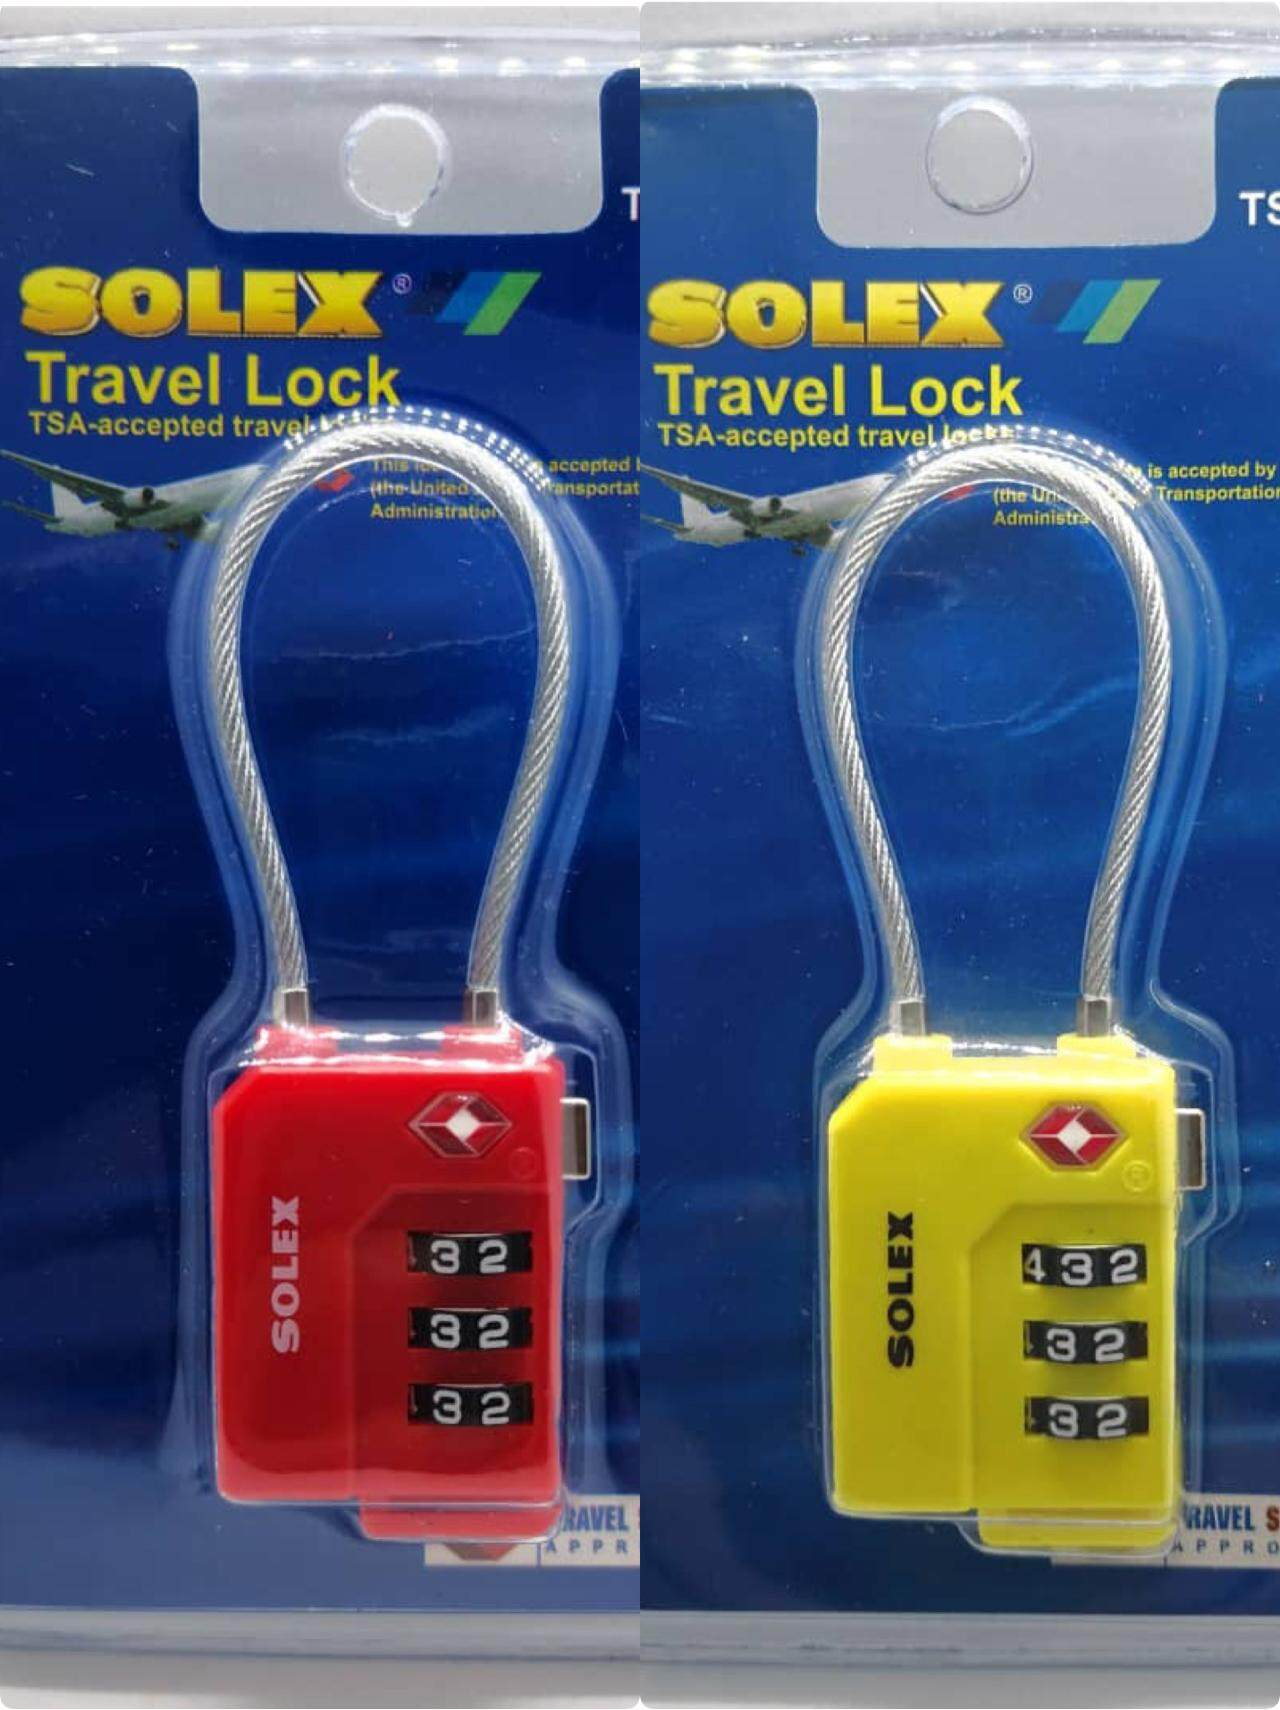 14a07a147 Solex (2 units) 33W 3 Digit Combintation Travel Luggage Lock, TSA Approved,